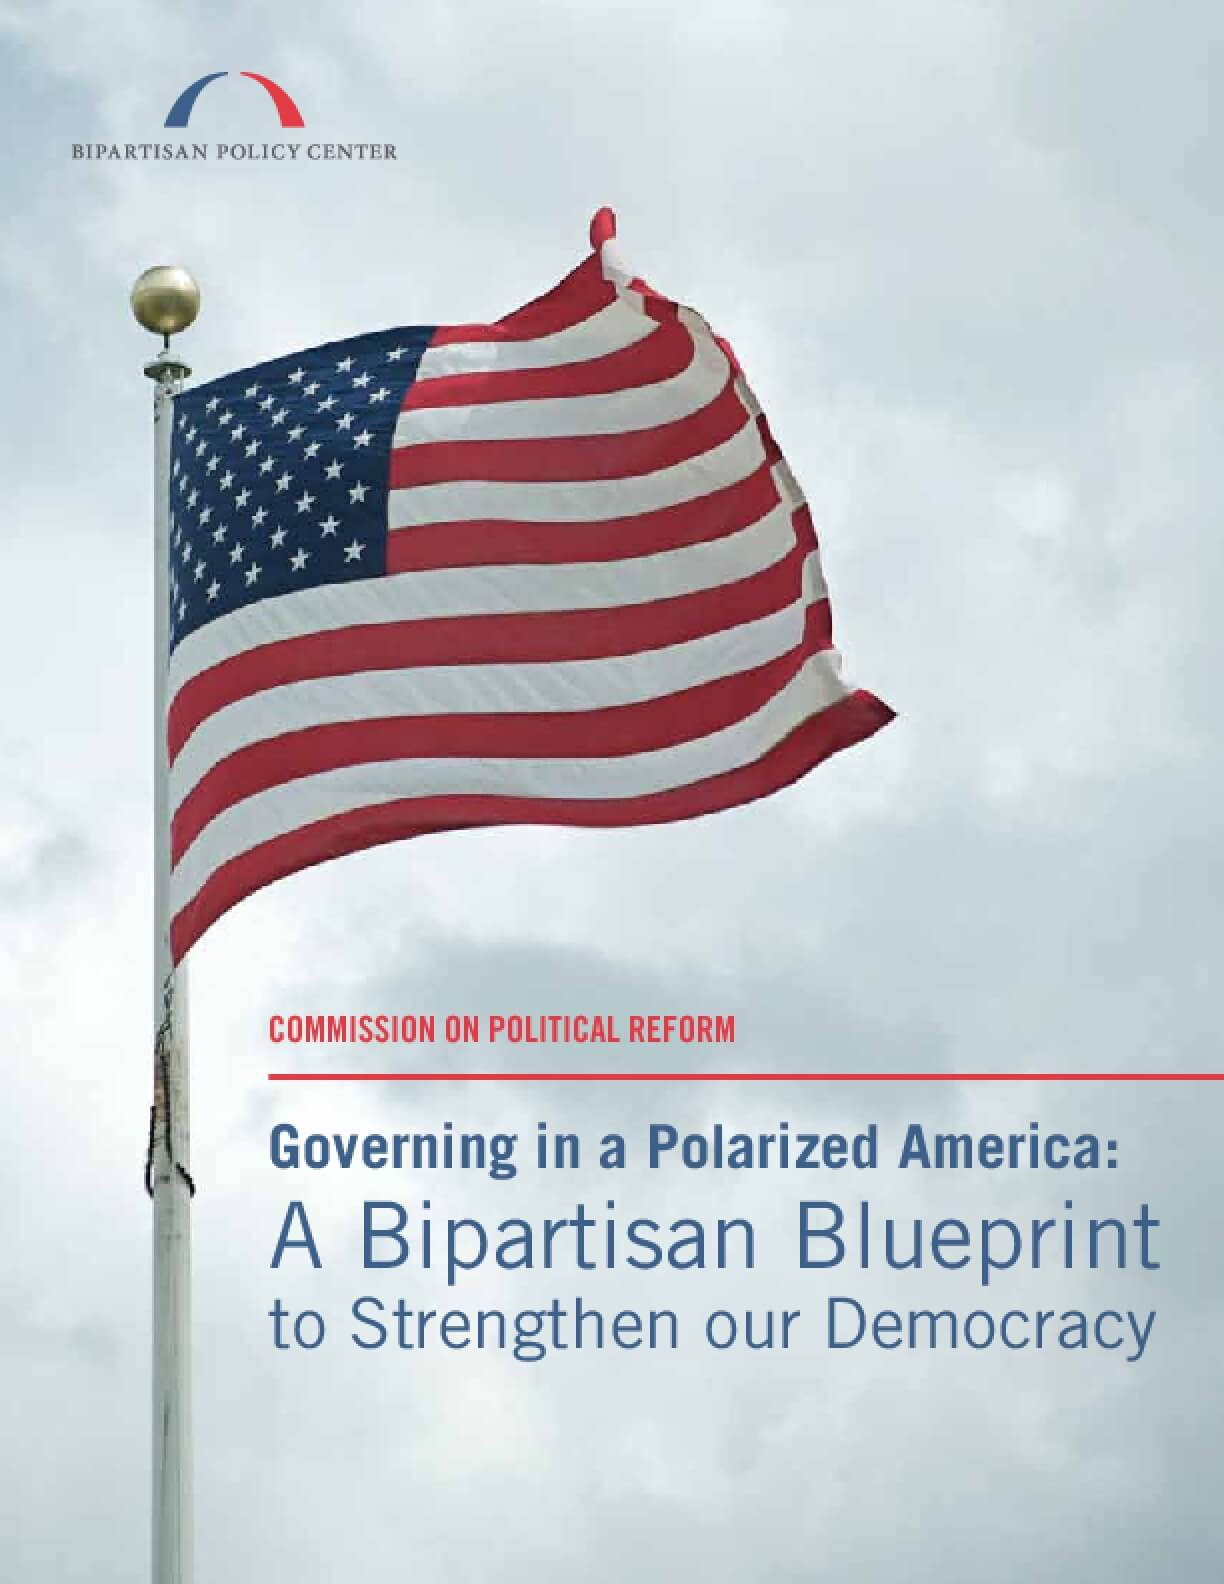 Governing in a Polarized America: A Bipartisan Blueprint to Strengthen our Democracy